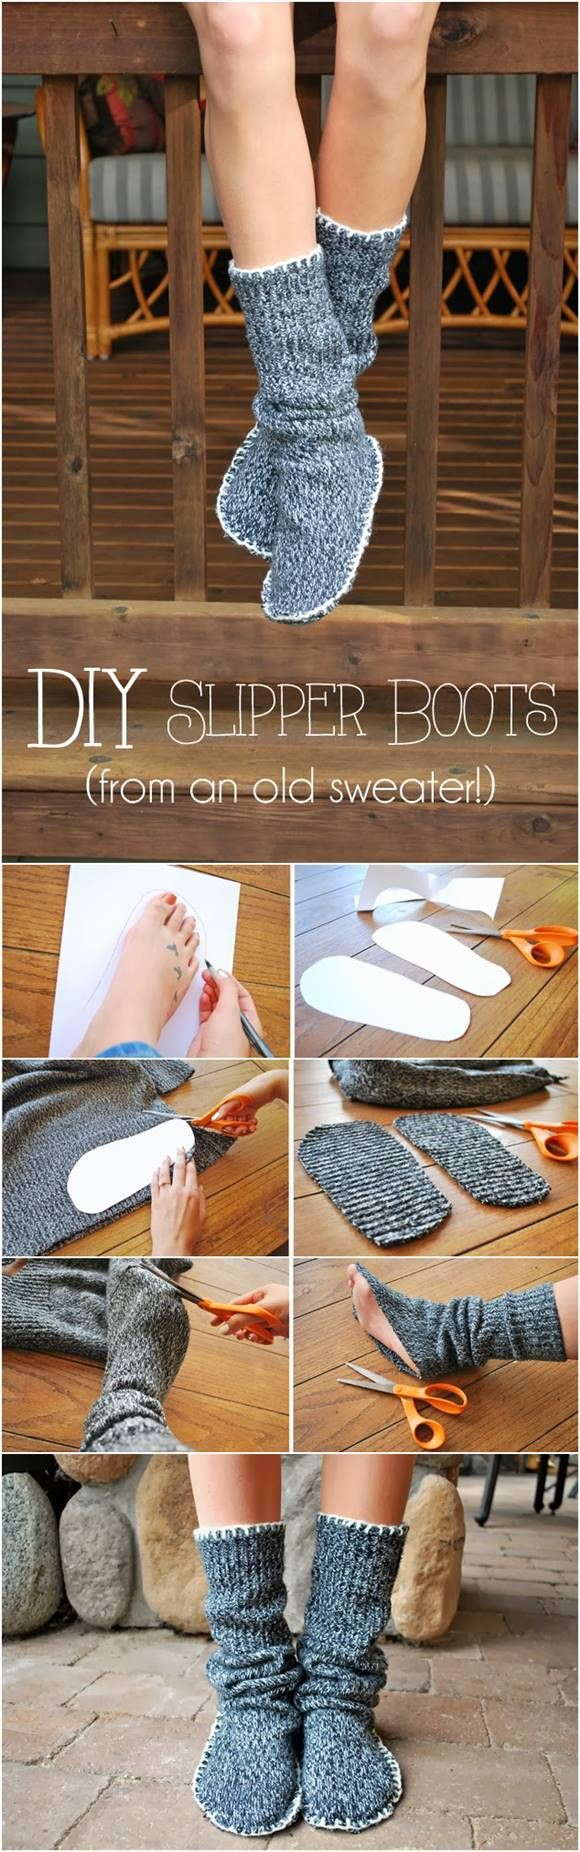 How to Upcycle Old Sweater into Slipper Boots #craft #sewing #repurpose…